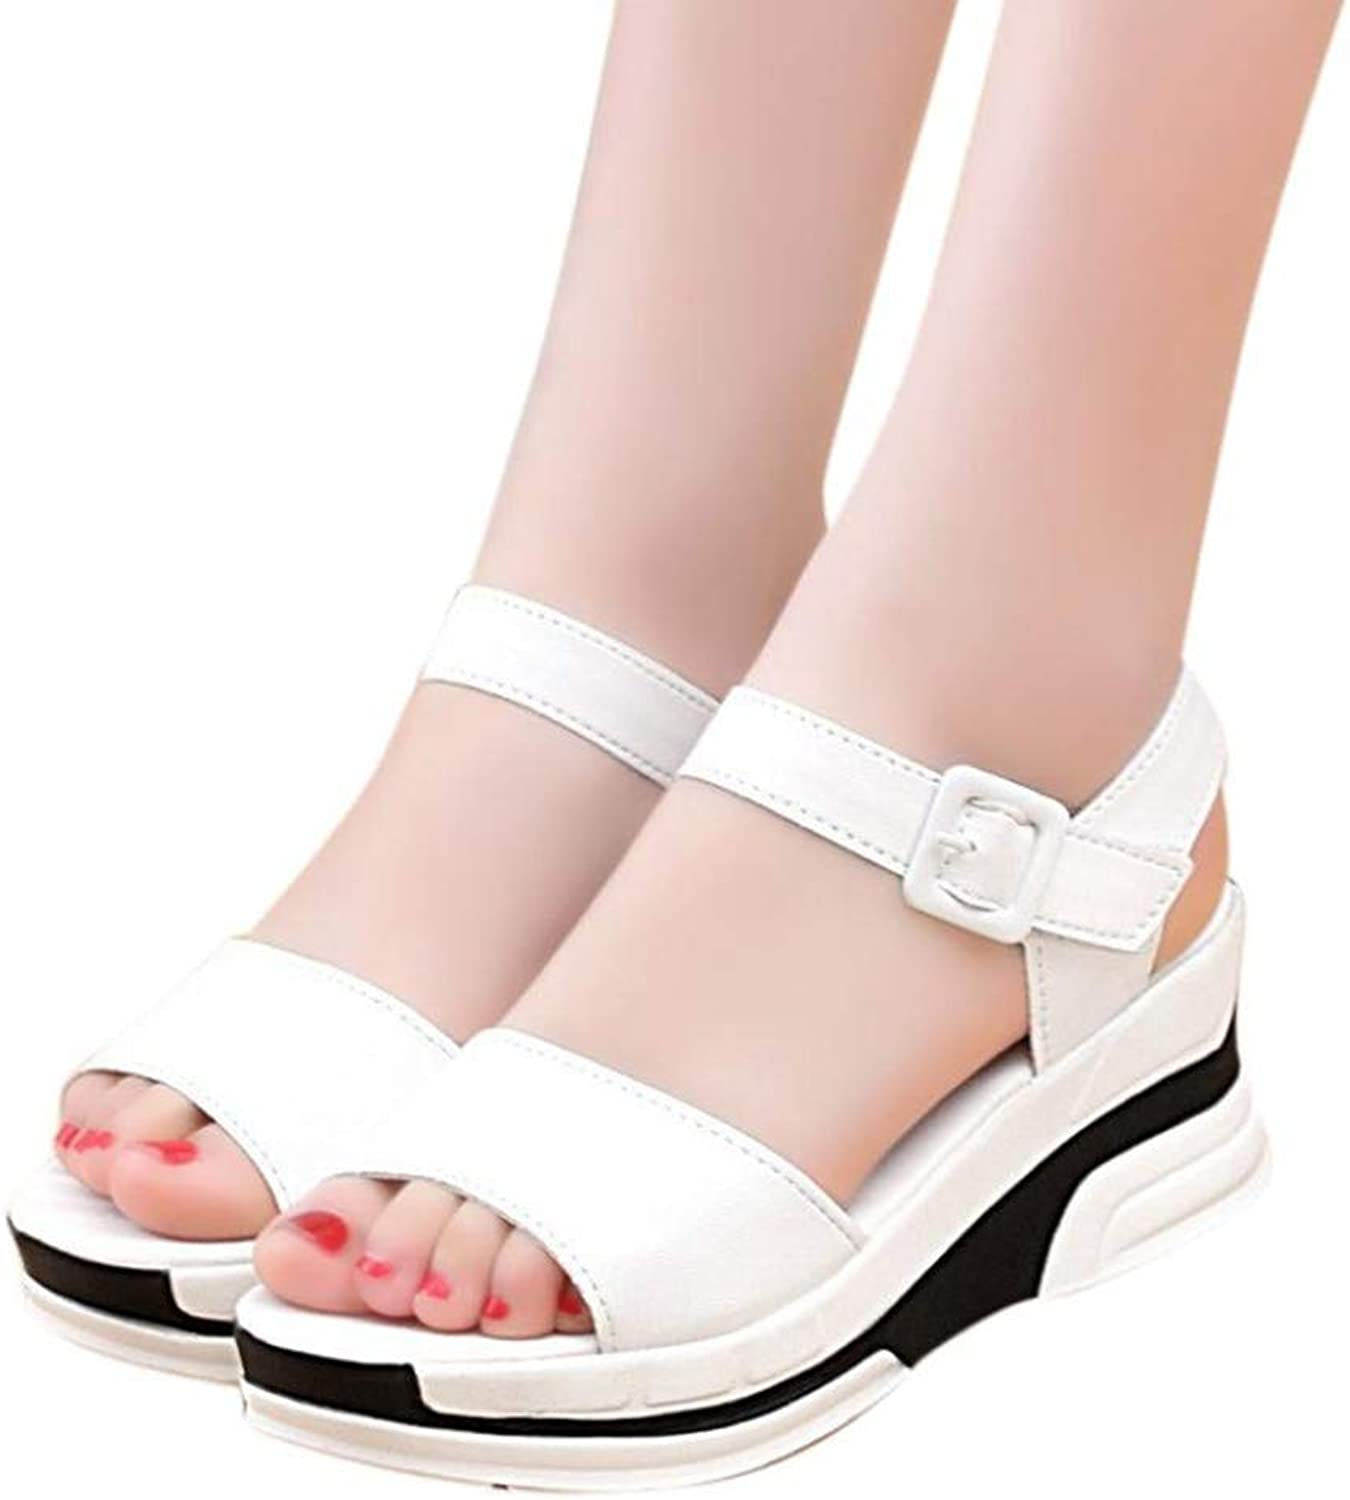 T-JULY Sandals Women's Summer Slippers Peep-Toe Low Heel Roman Sandals Ladies Flip Flops